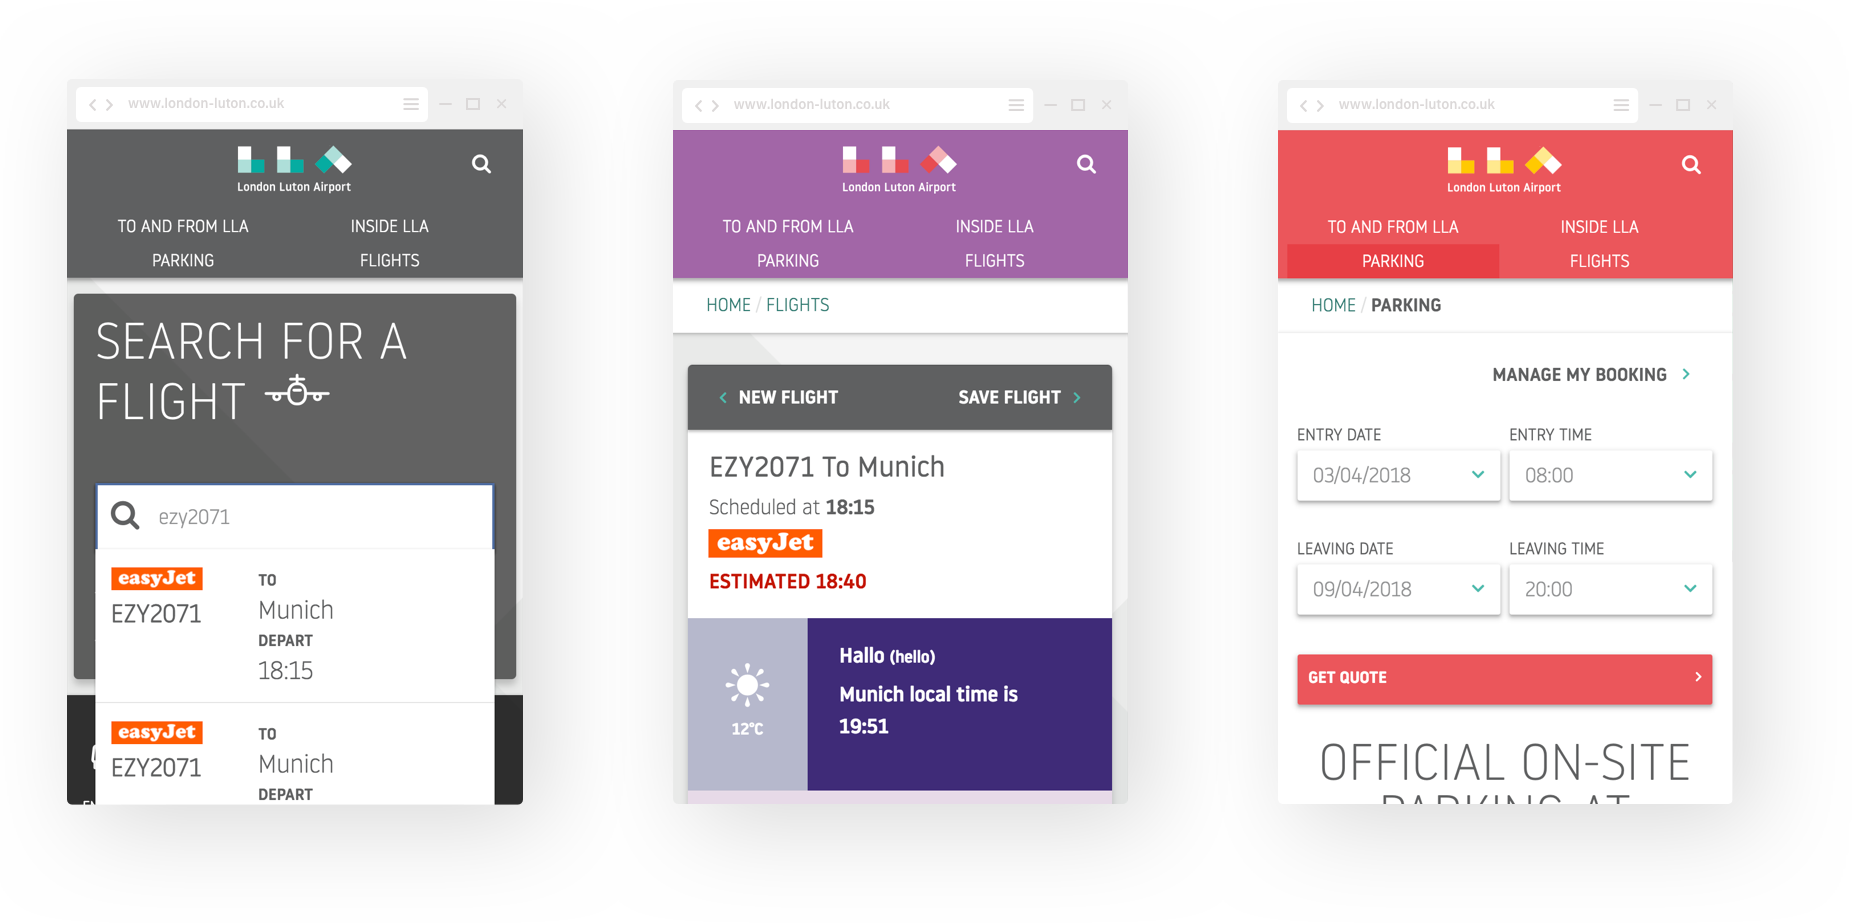 Mobile design for London Luton Airport